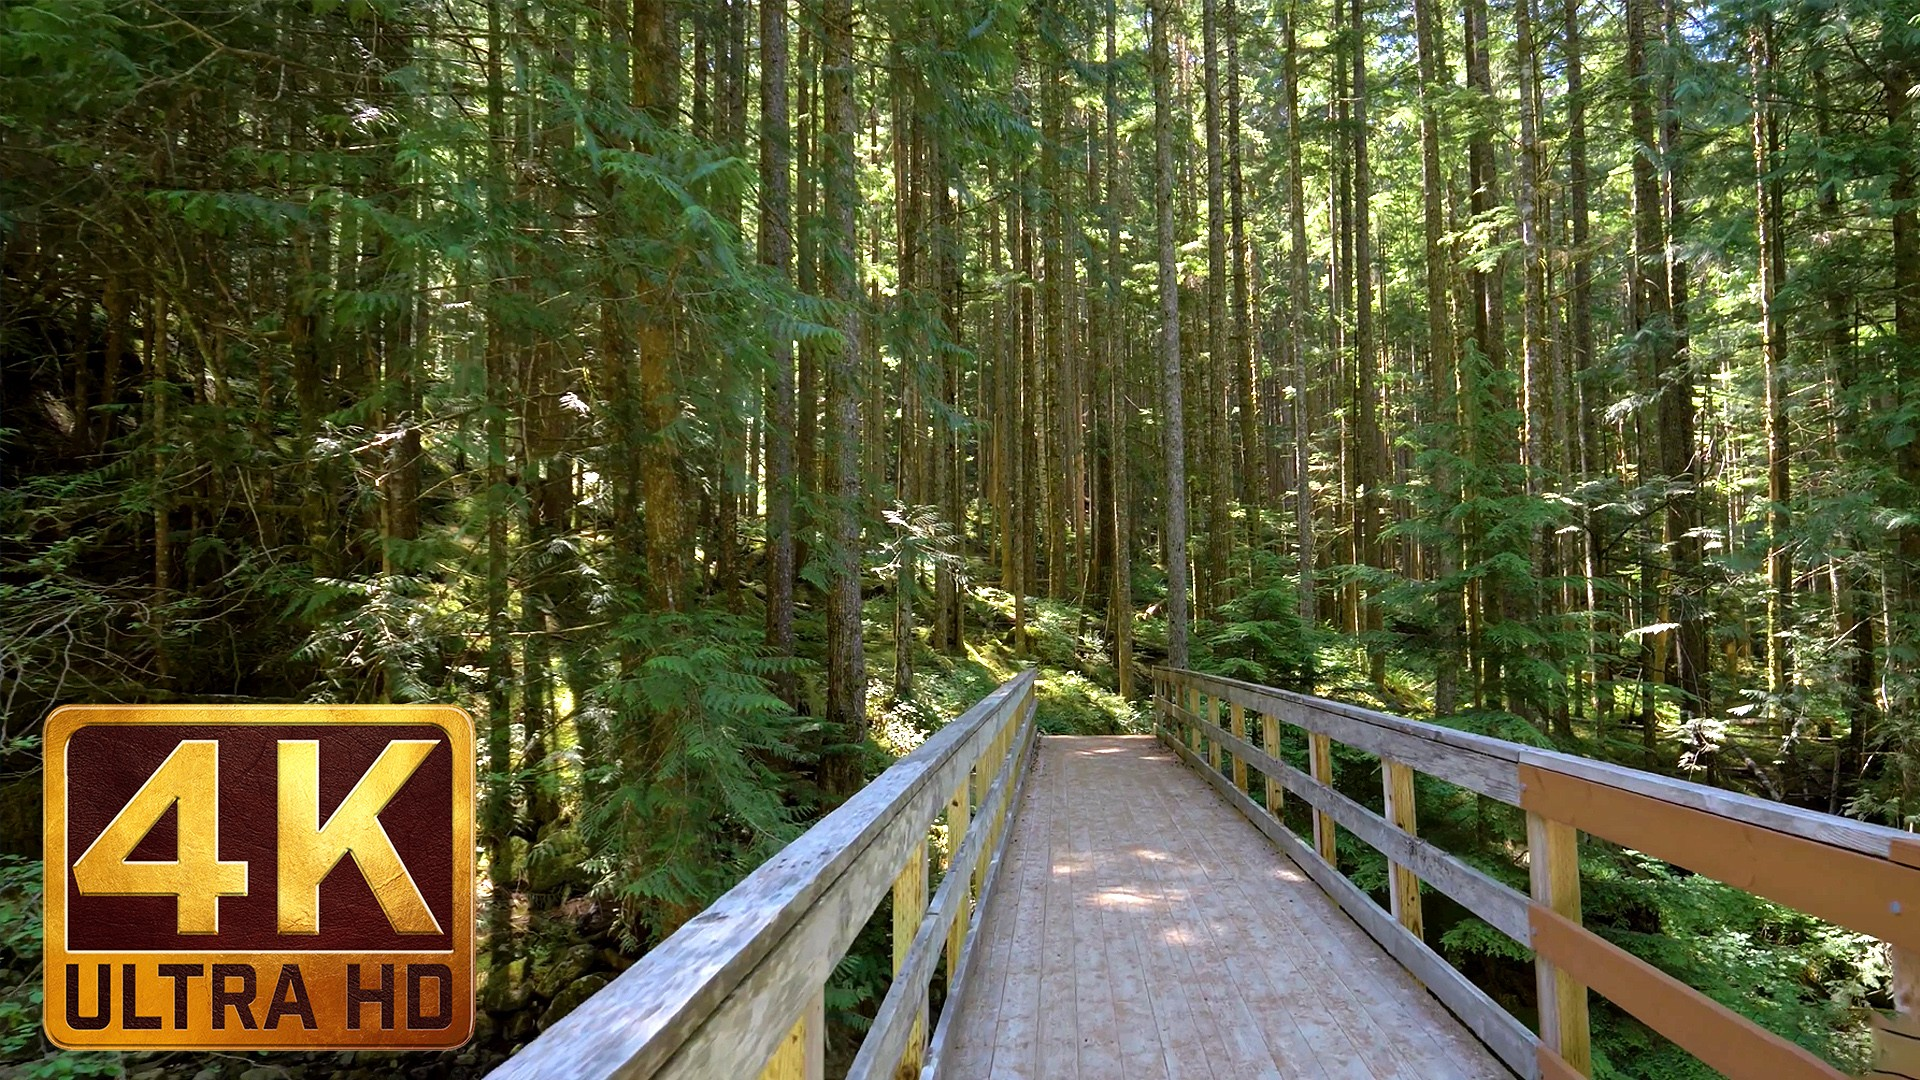 MIDDLE FORK TRAIL, Snoqualmie region